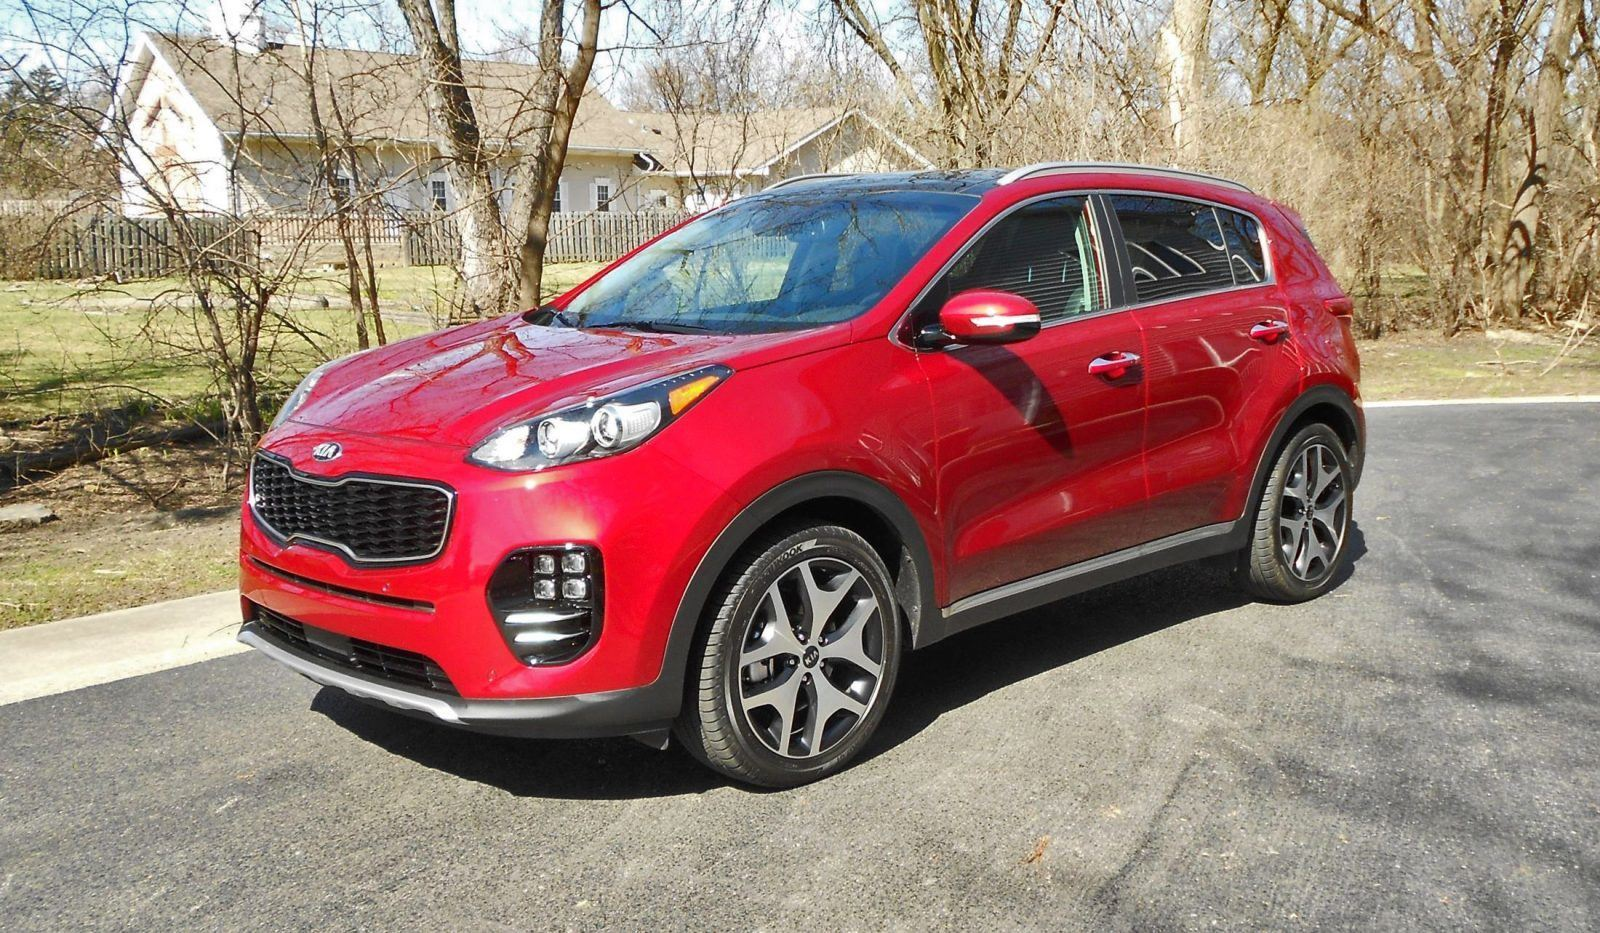 road test review 2017 kia sportage sx fwd by ken hawkeye glassman. Black Bedroom Furniture Sets. Home Design Ideas